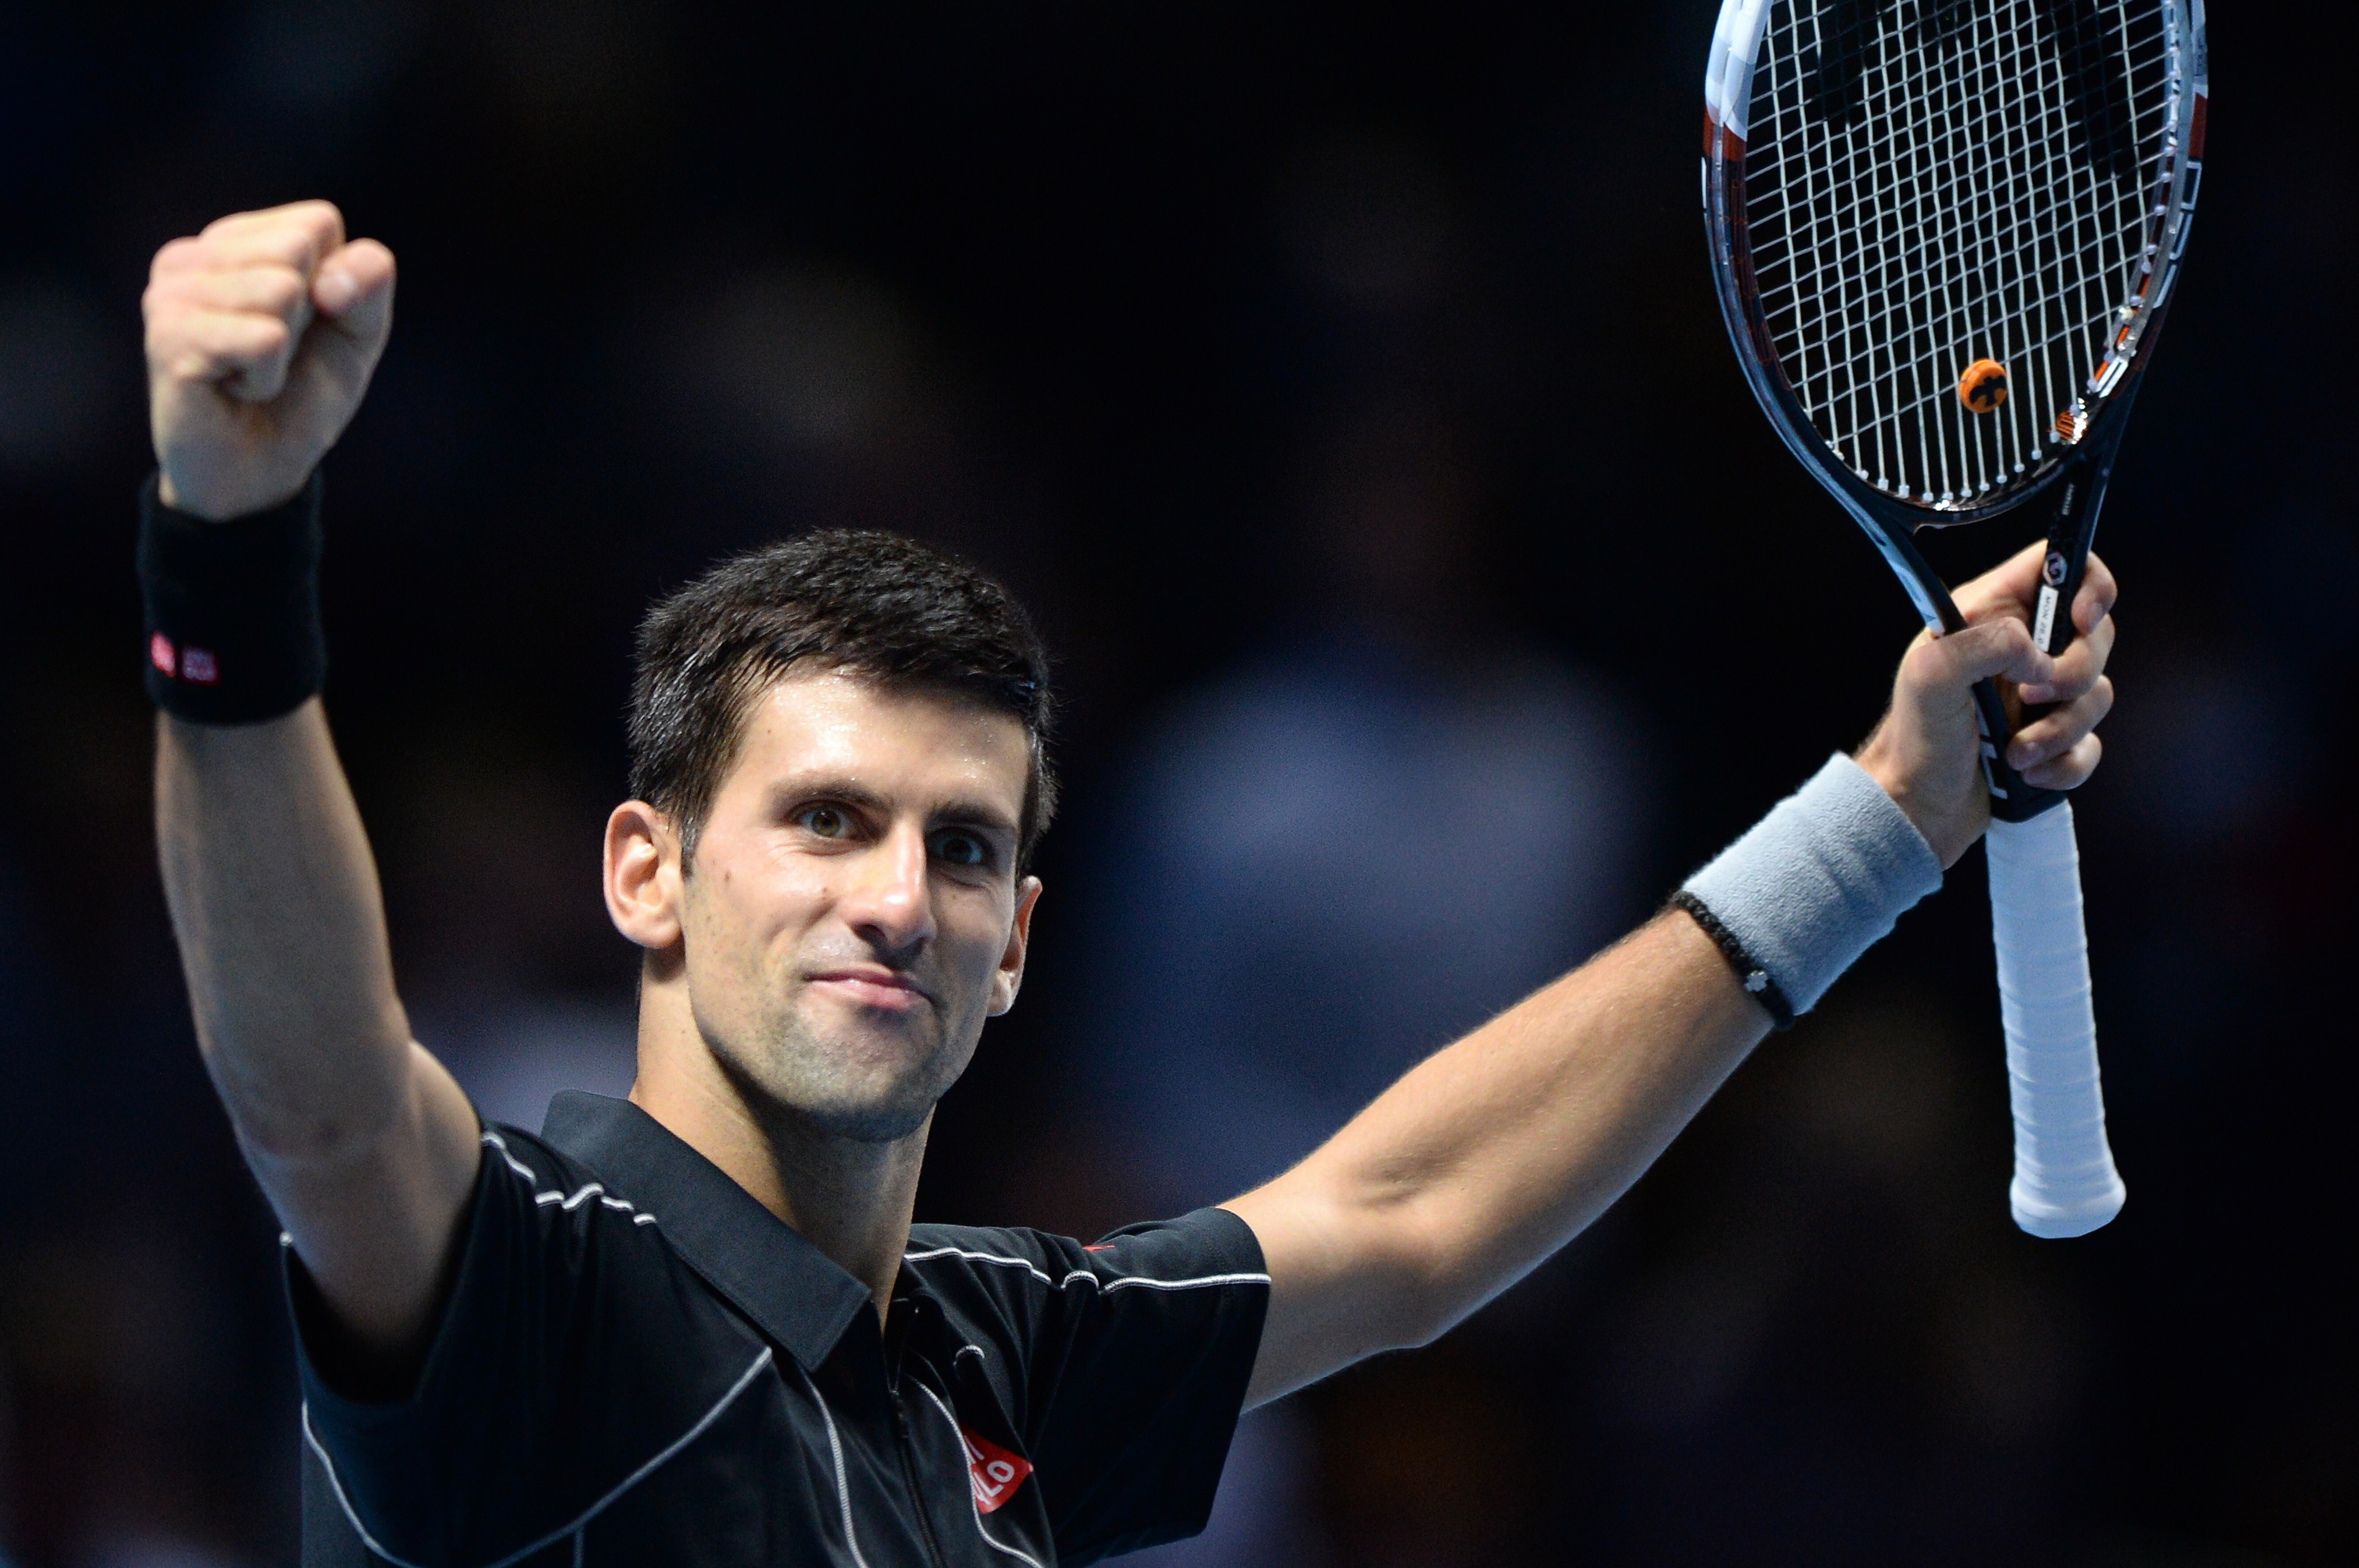 Tennis Players HD Wallpapers Images Pictures Photos Download